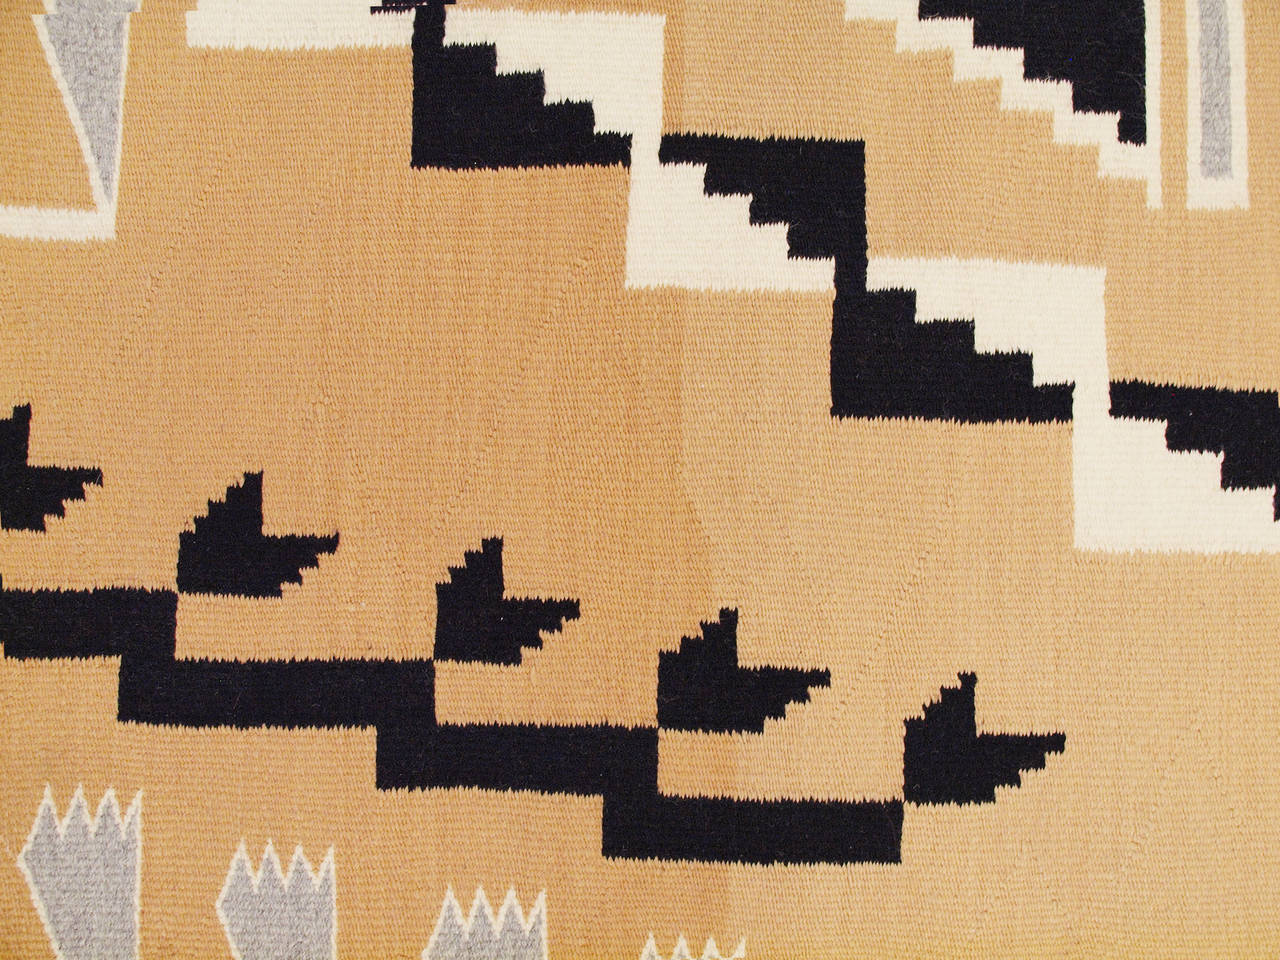 Vintage Navajo Rug, Crystal Trading Post, Mid-20th Century In Excellent Condition For Sale In Denver, CO